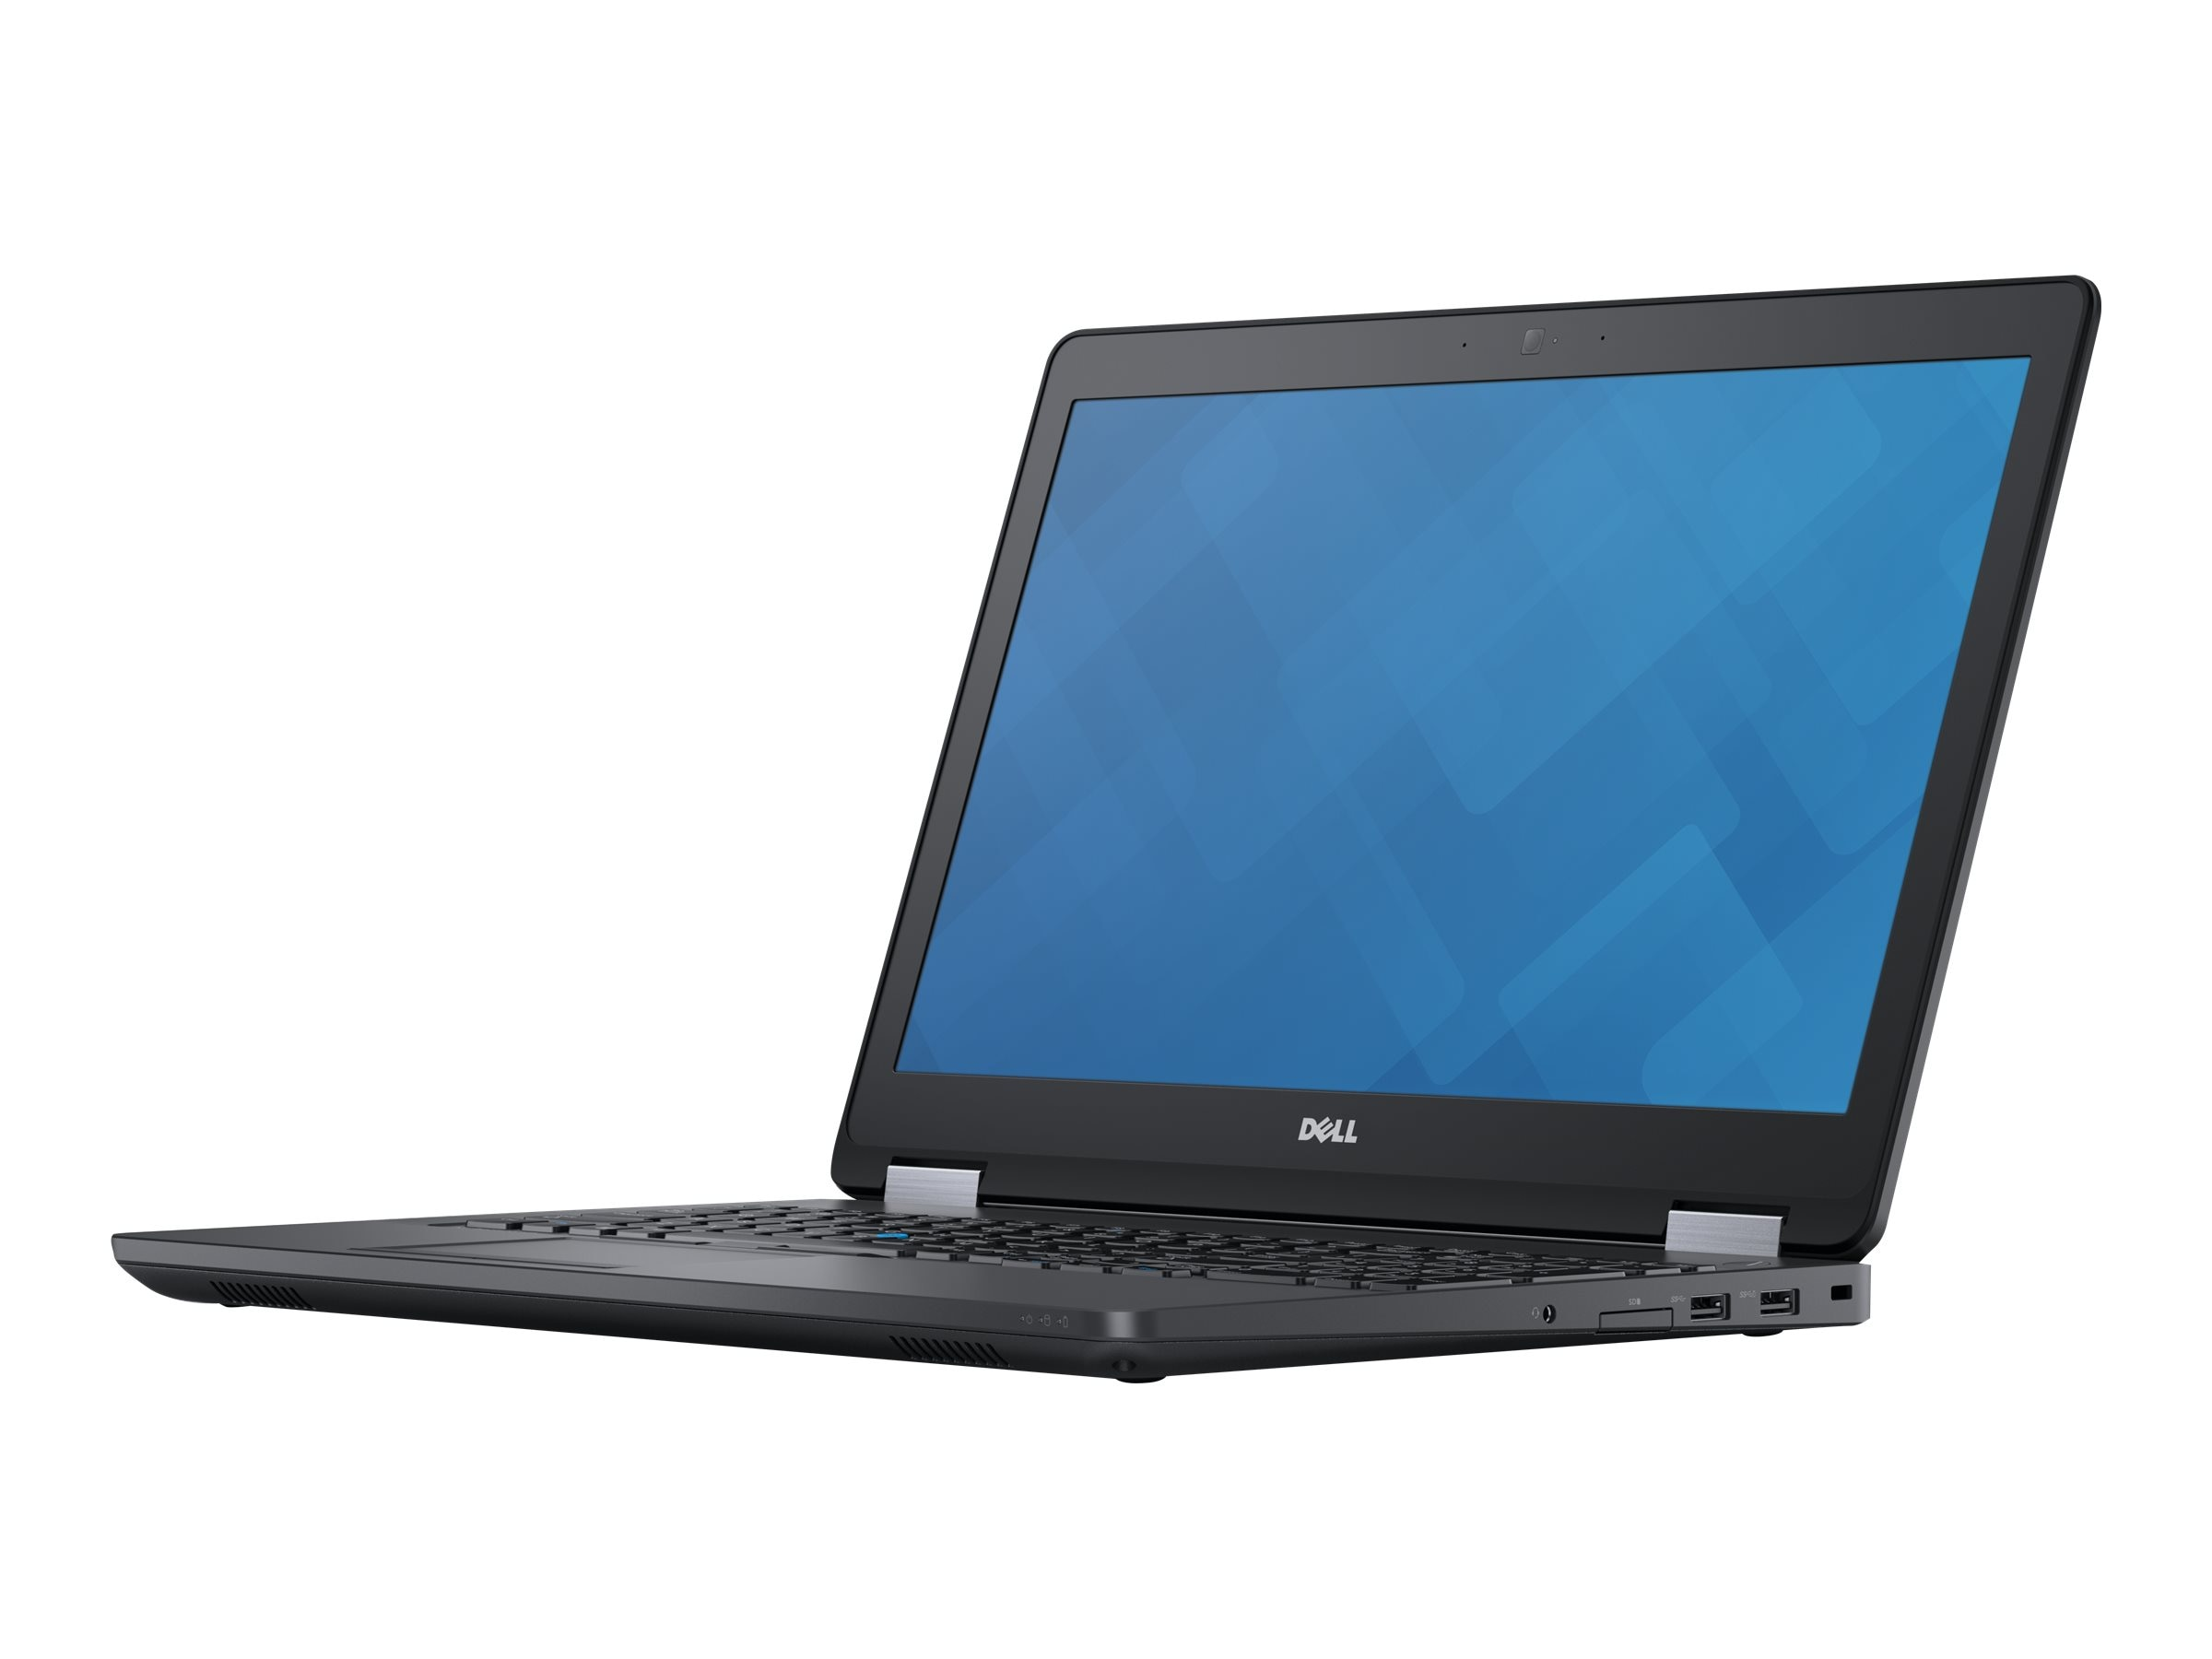 Dell Precision 3510 Core i5 2.6GHz 8GB 500GB W7 3YR NBD, 24M27, 31867408, Workstations - Mobile